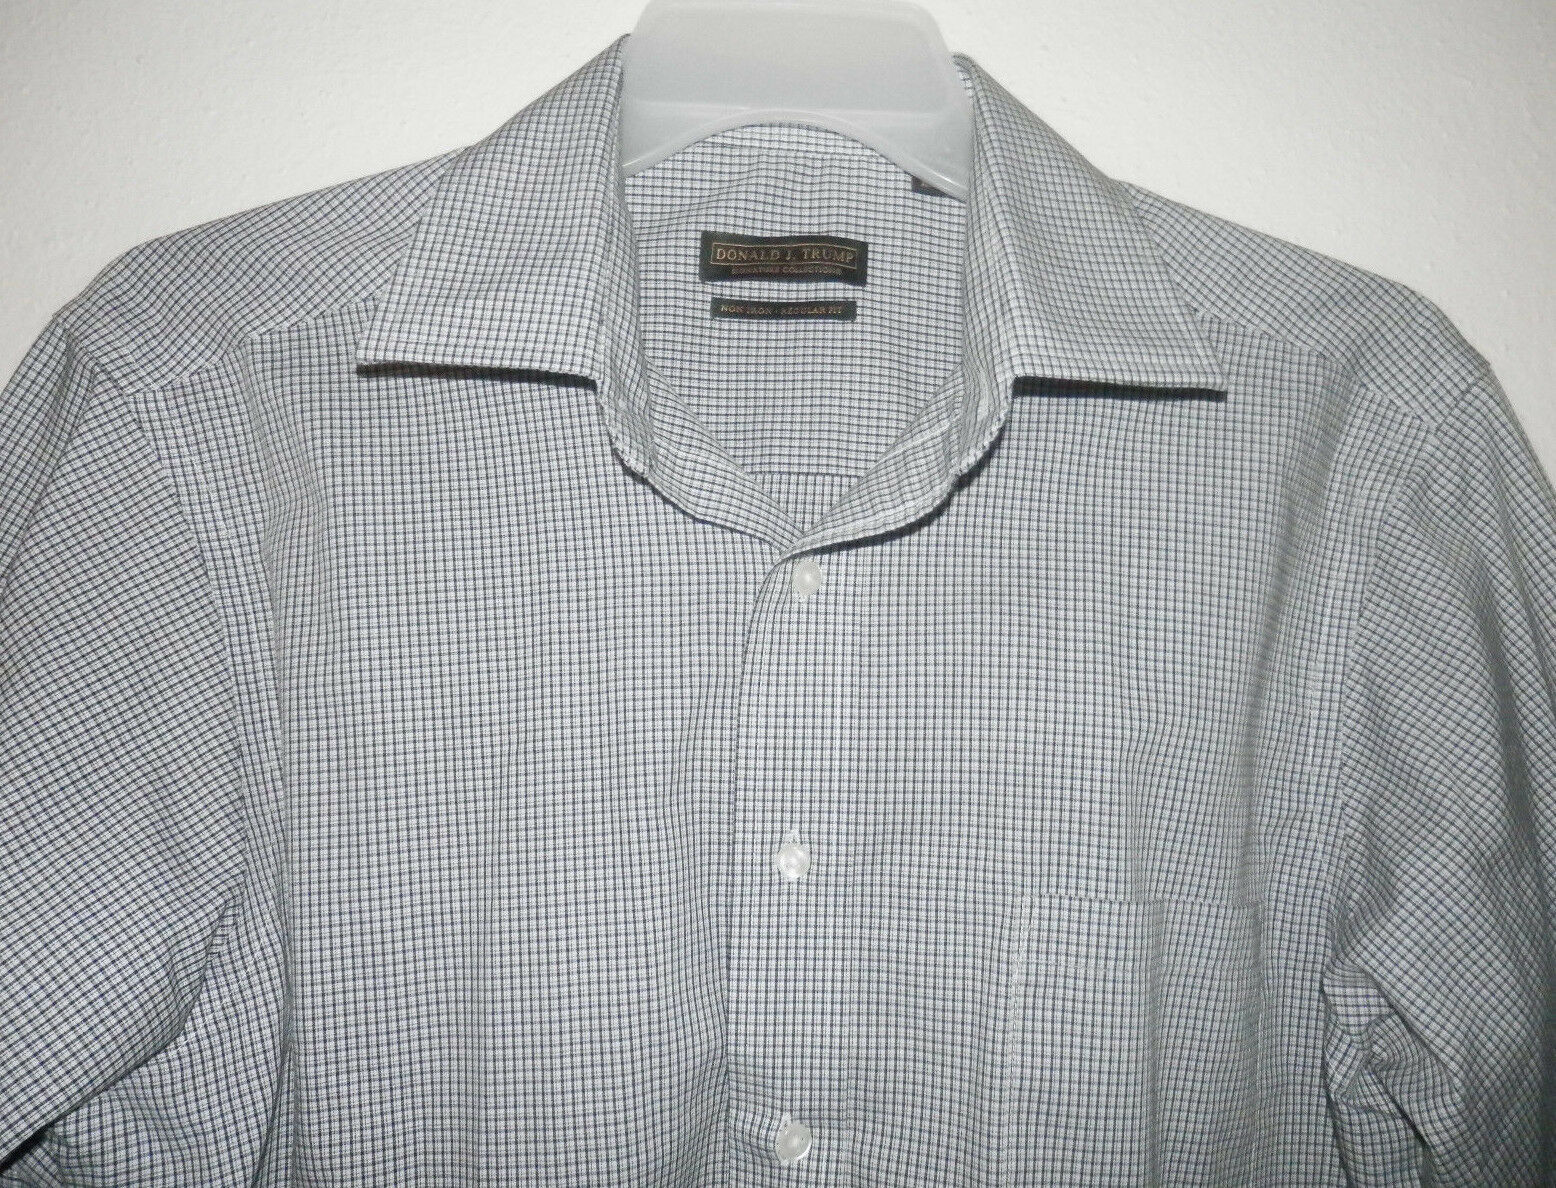 Donal J.Trump  Collection bluee and White Stripes Men's Dress Shirt Sz 16